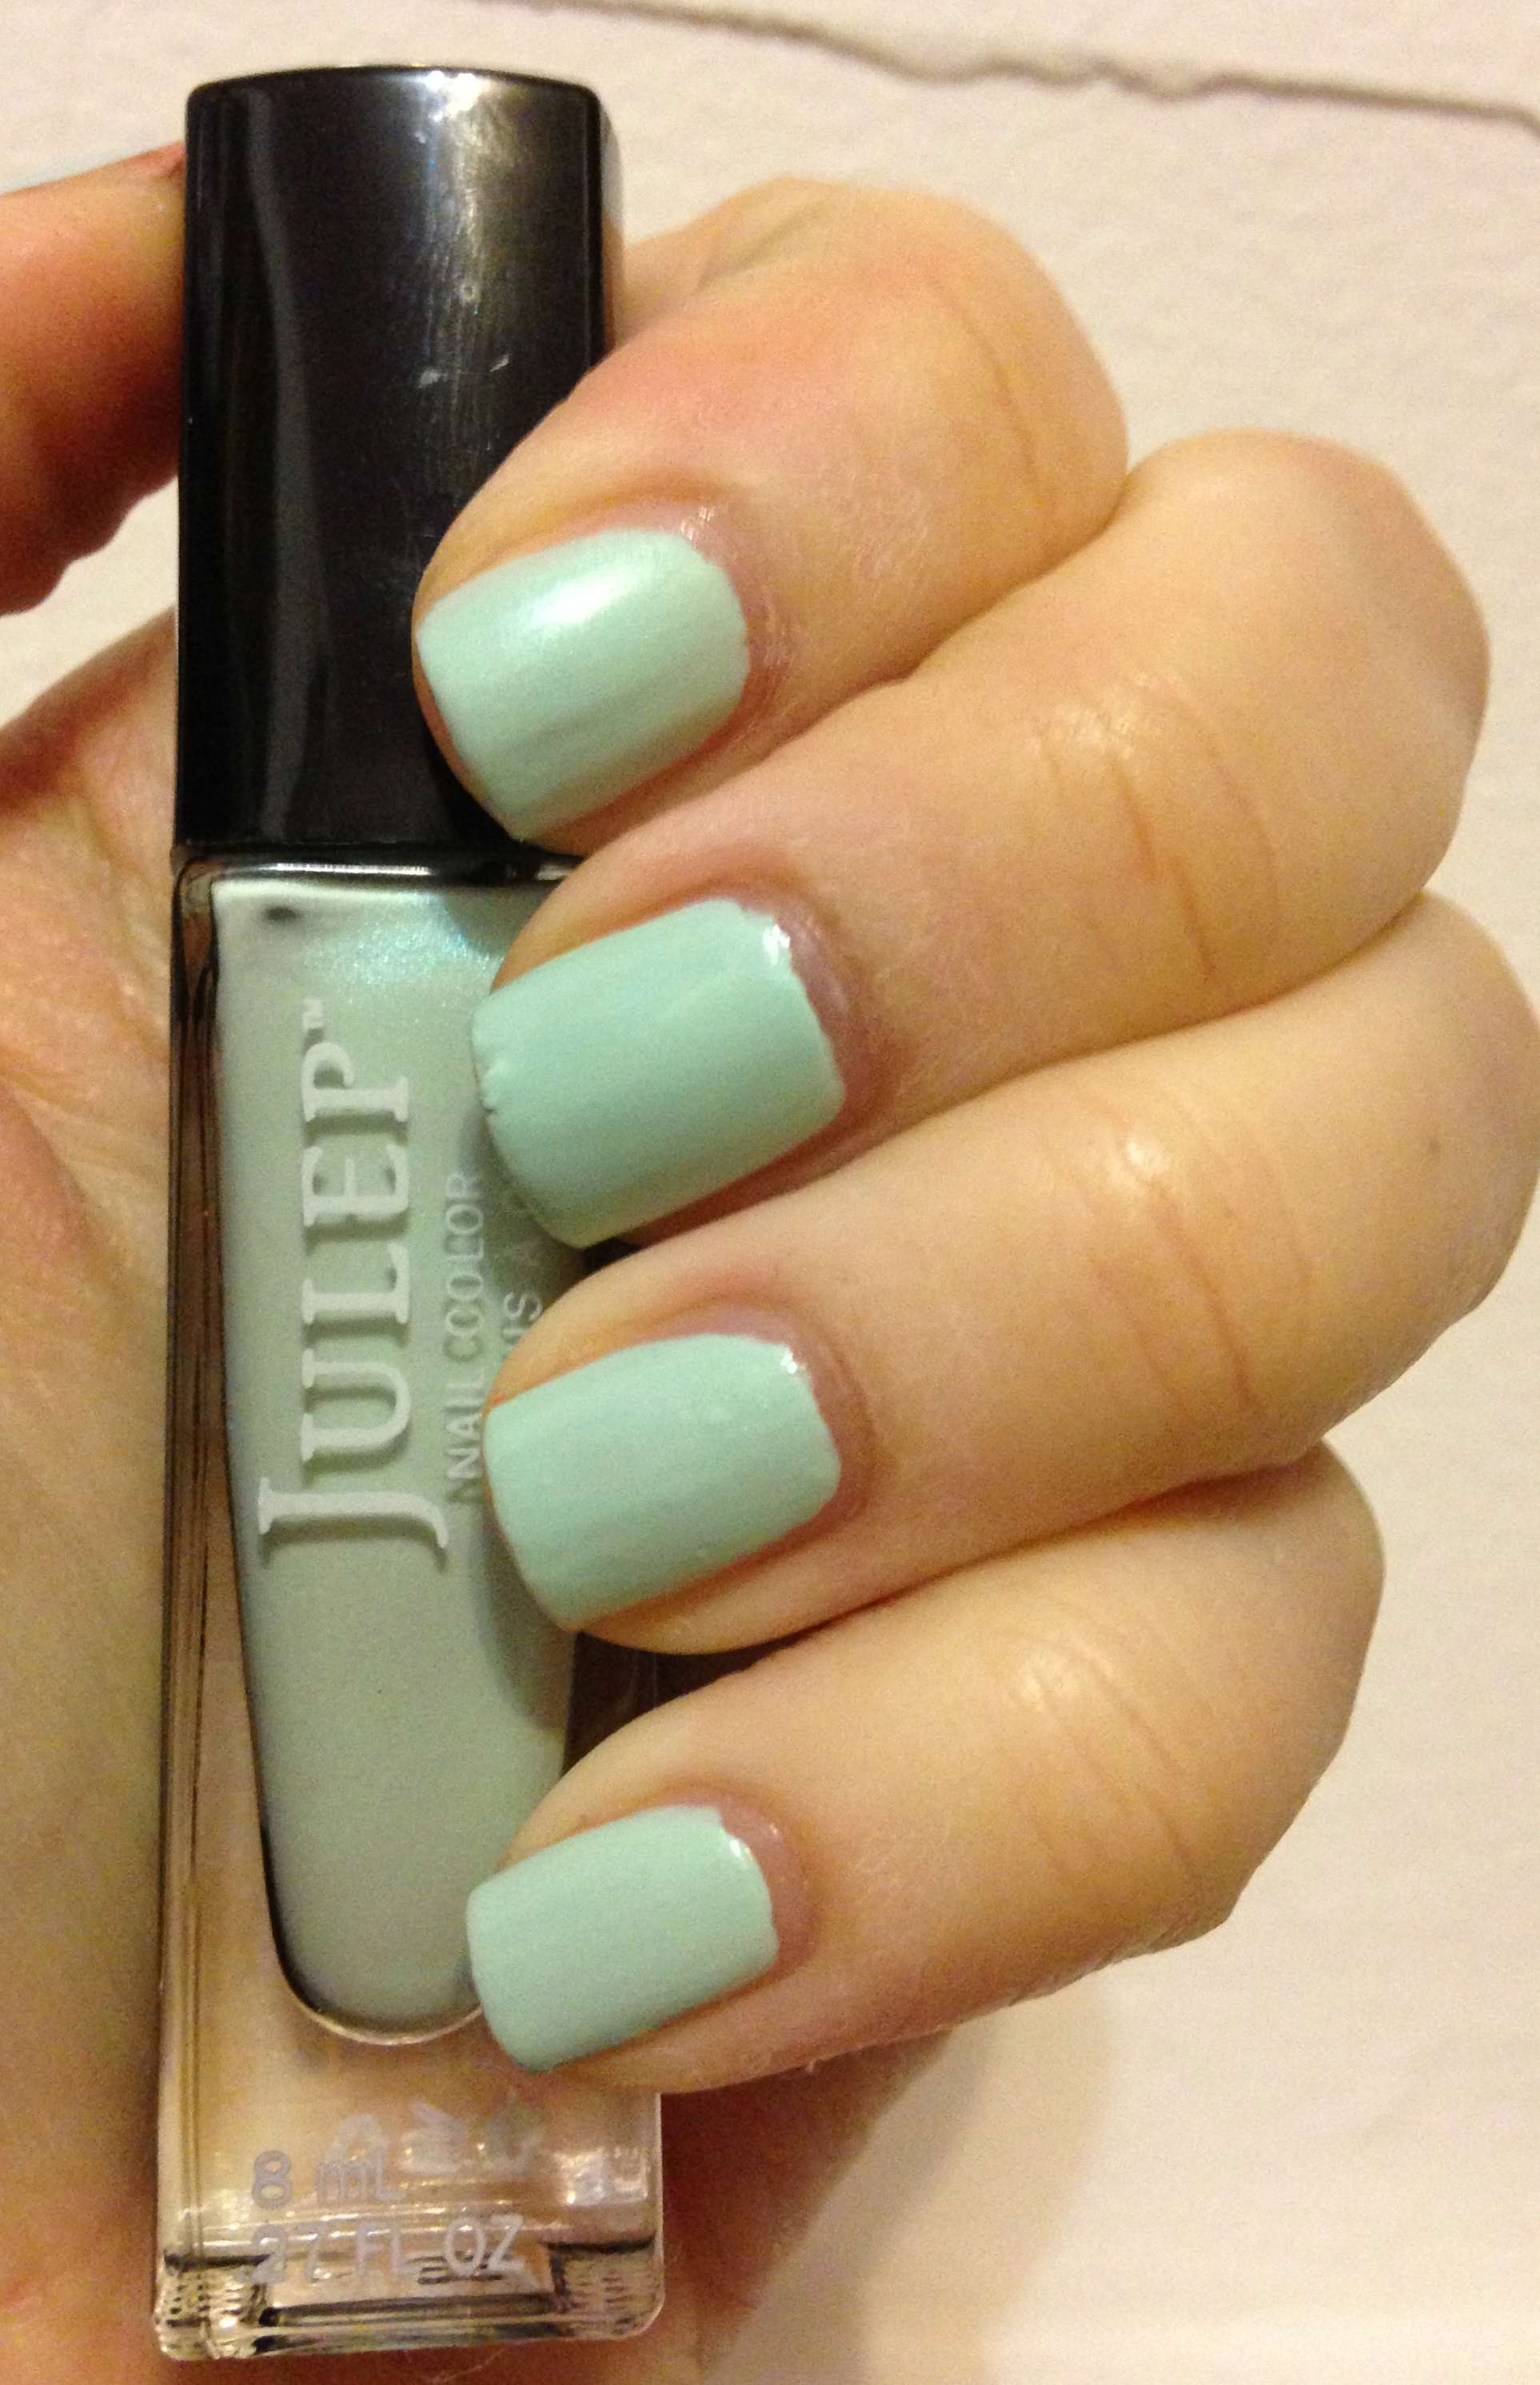 Last but not least is Shenae, a shimmery mint green polish. Shenae is opaque in two coats and the formula is great! I had no problems whatsoever with ...